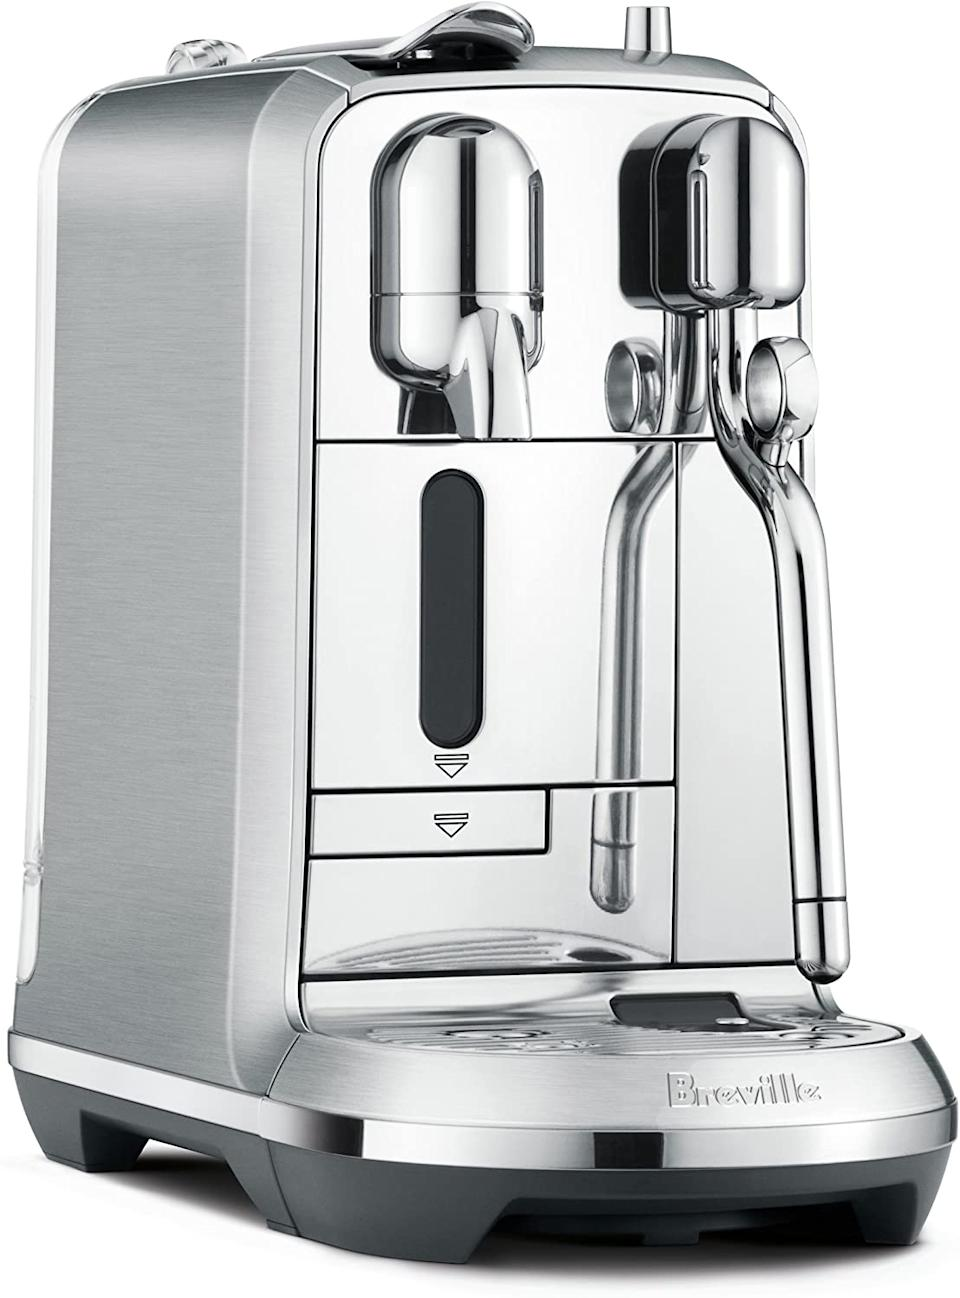 Breville Nespresso Creatista Plus. Image via Amazon.